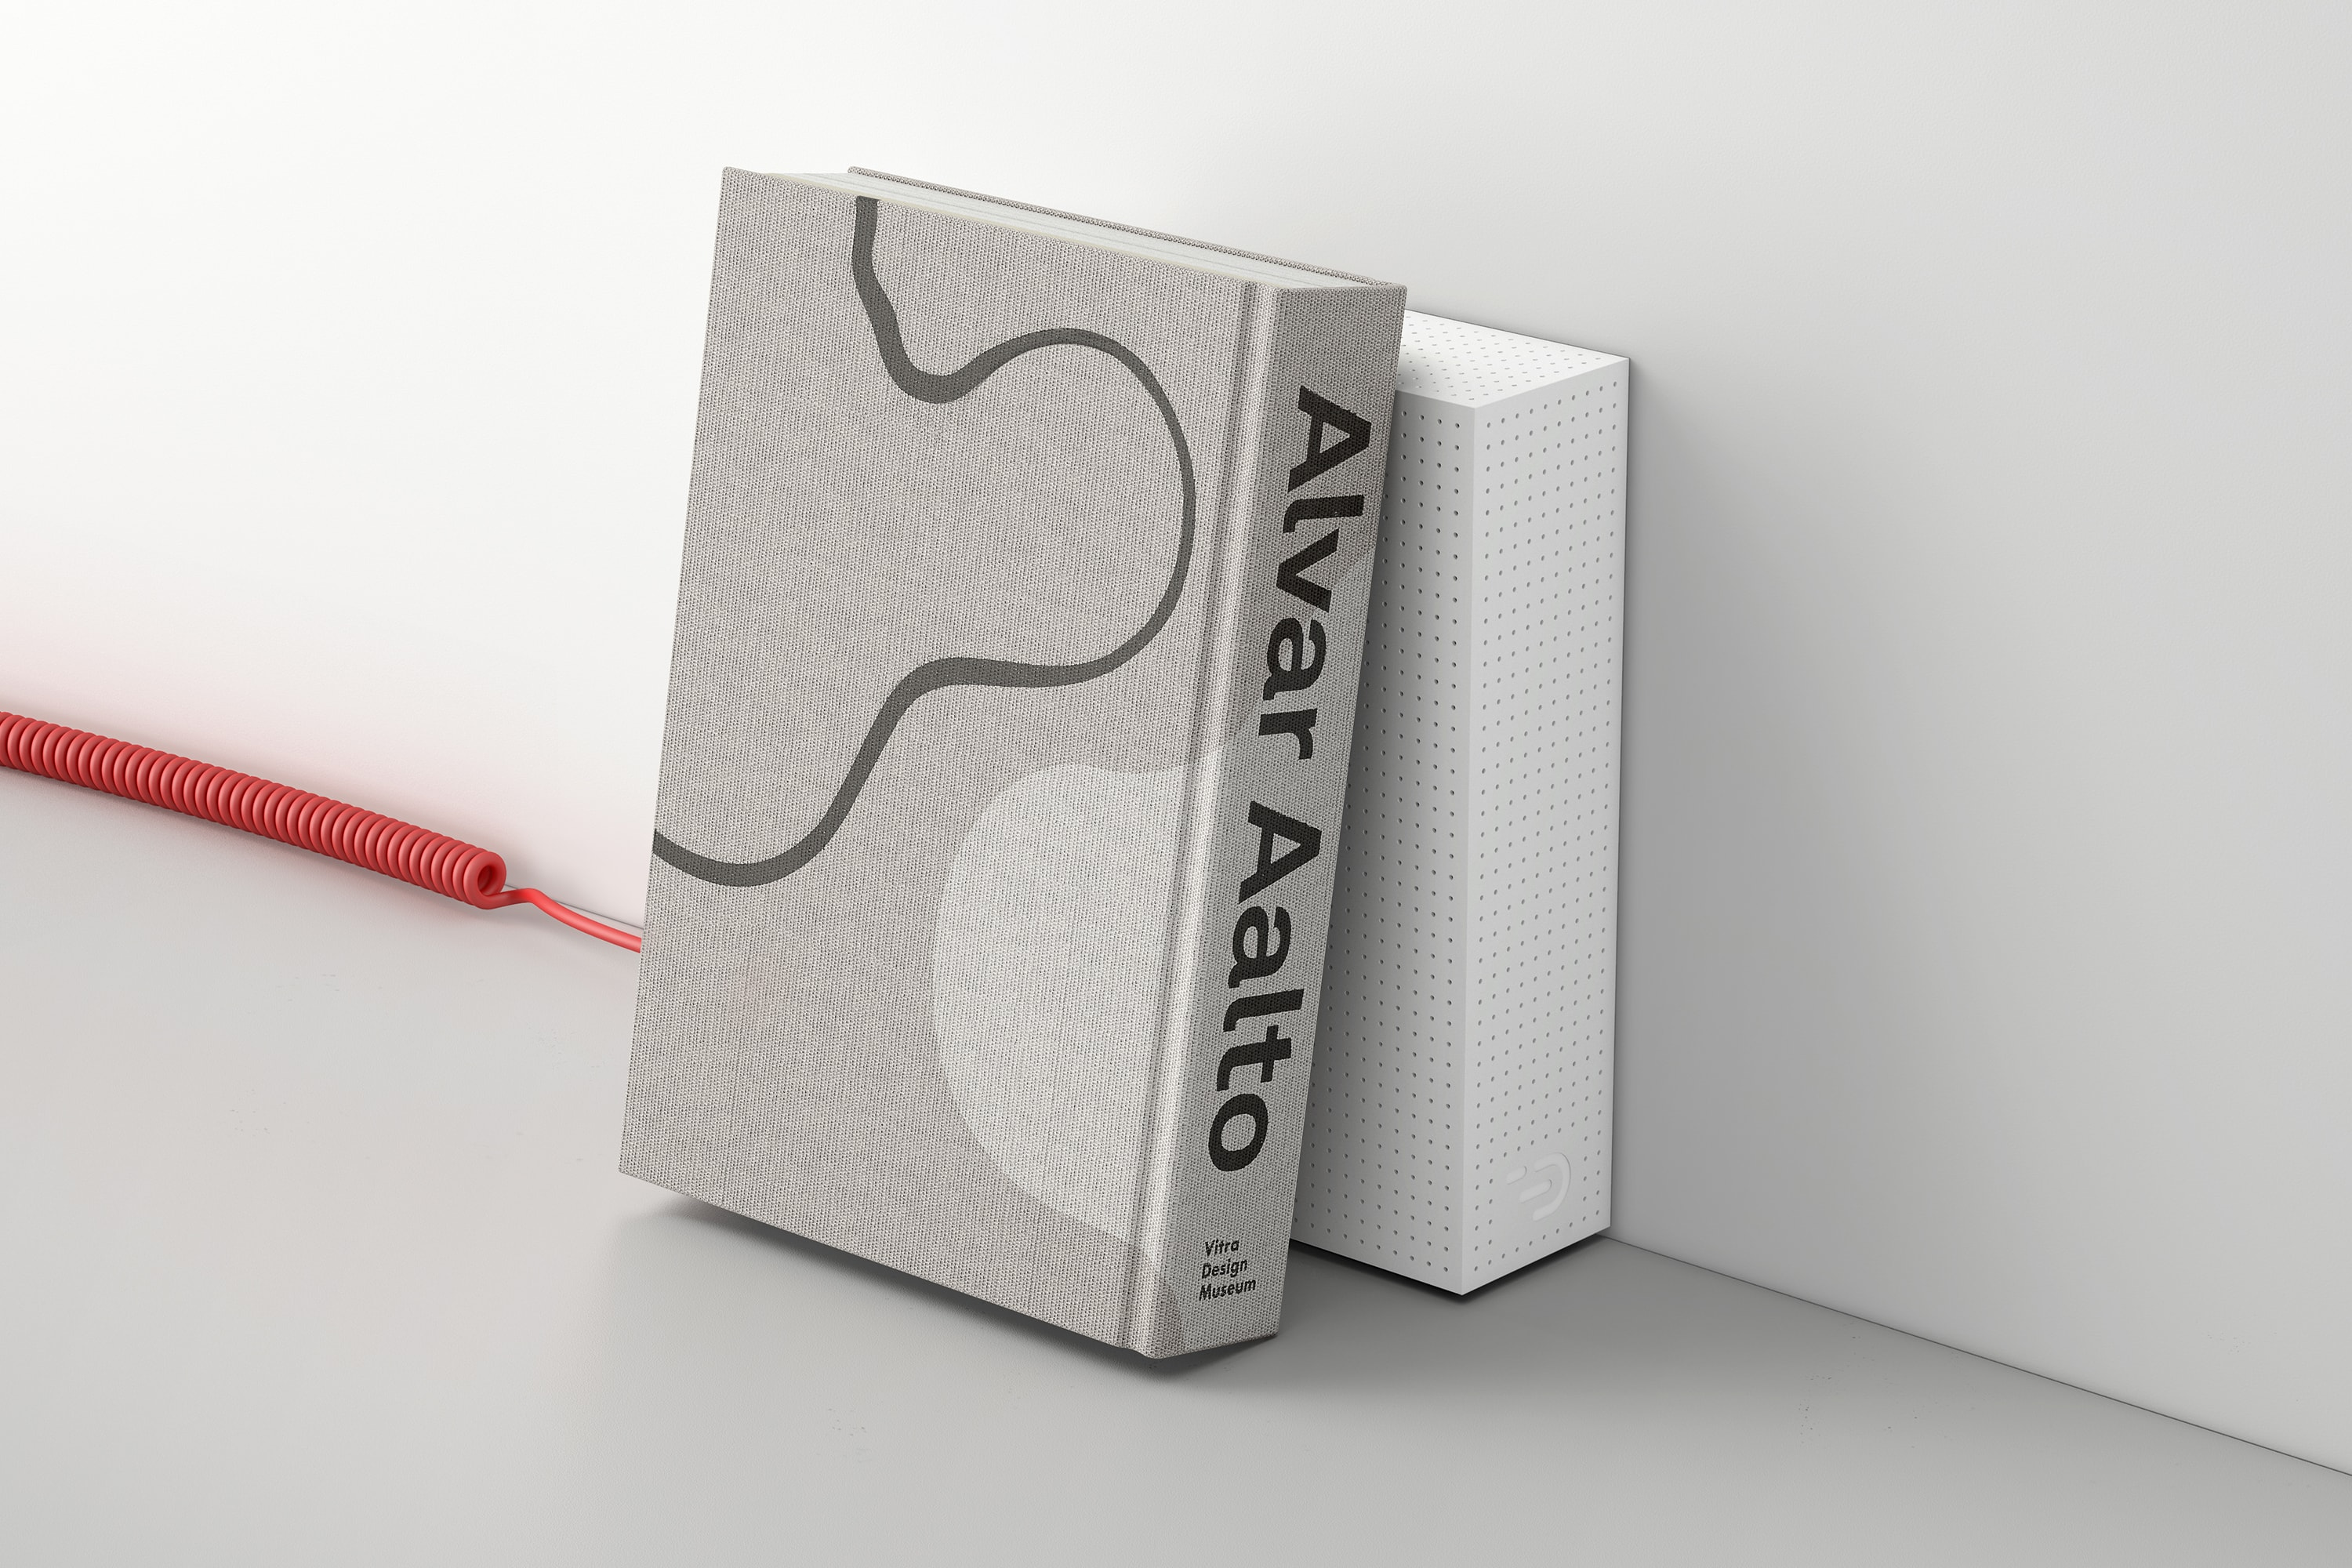 Perspective view of the Node one in white beside a Alvar Aalto book. The casing is perforated with small holes for venting and shows the DADI logo. The red spiralled power cable is plugged in.